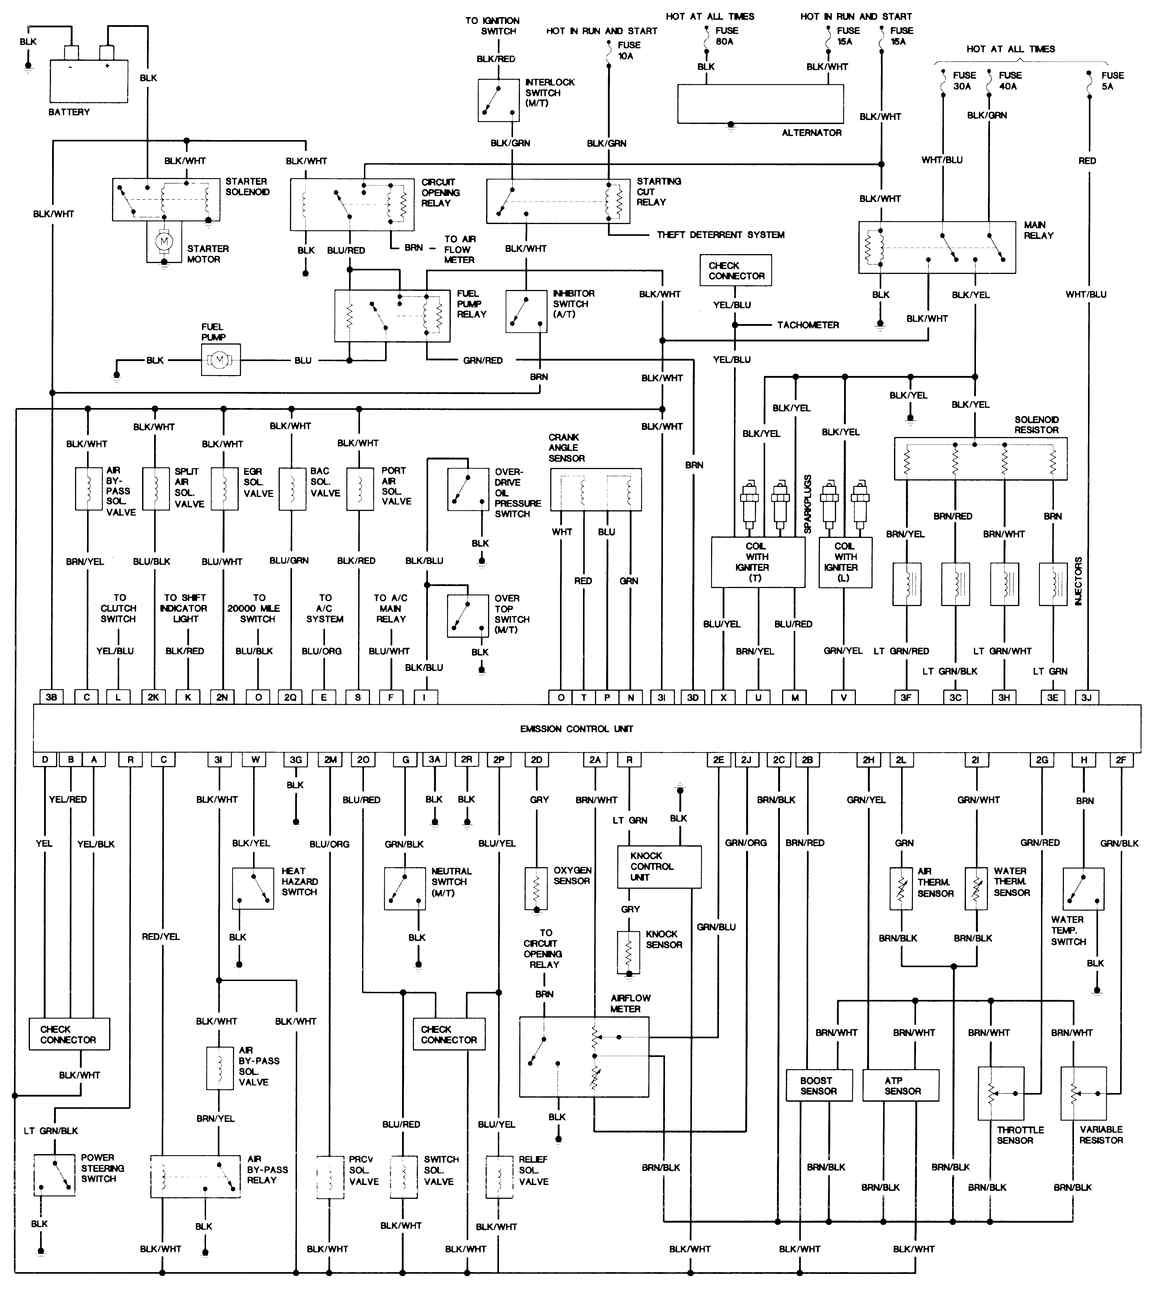 hight resolution of rx7 wiring diagram wiring diagram blogs rx7 12a wiring diagram rx7 wiring diagram